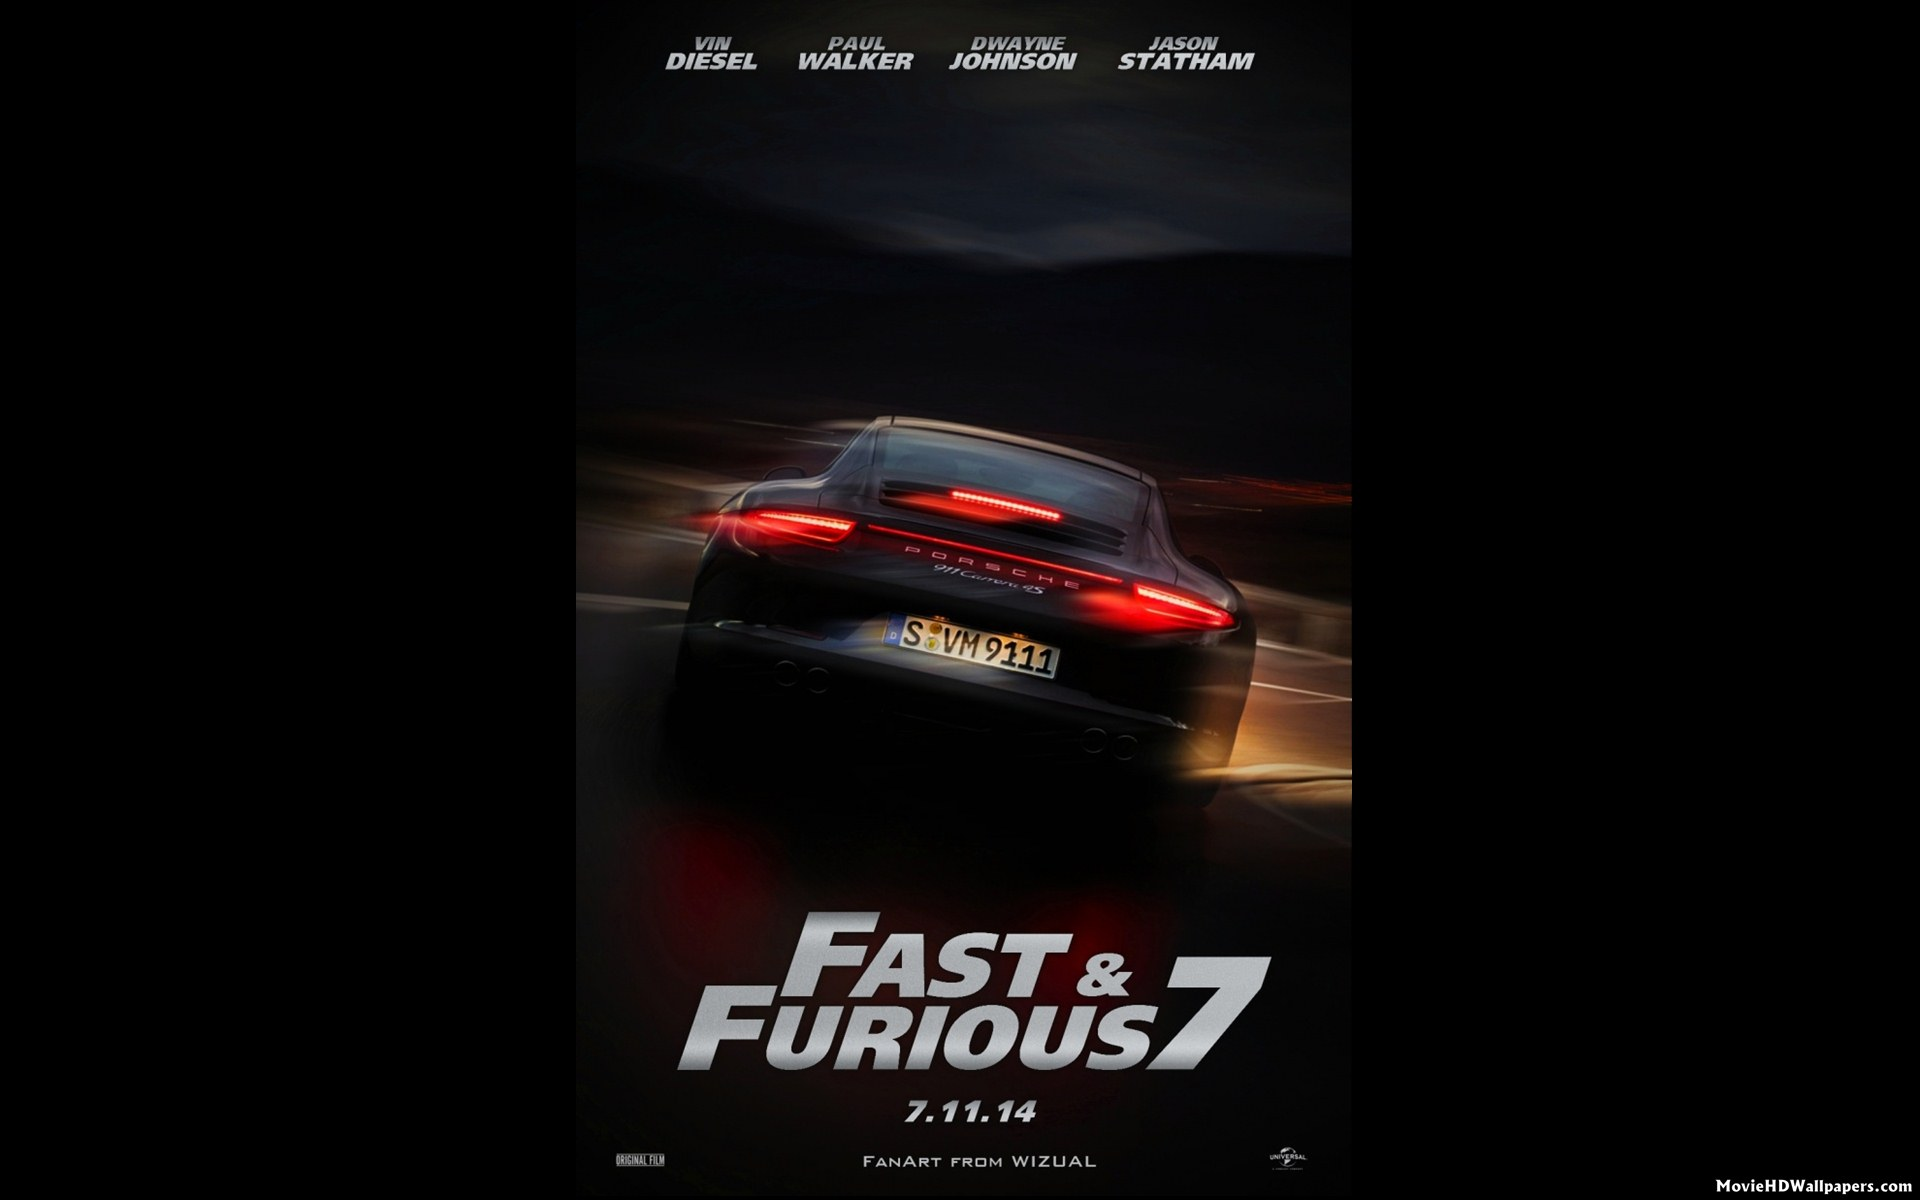 get fast furious 7 2014 movie film review hd wallpapers images 1920x1200